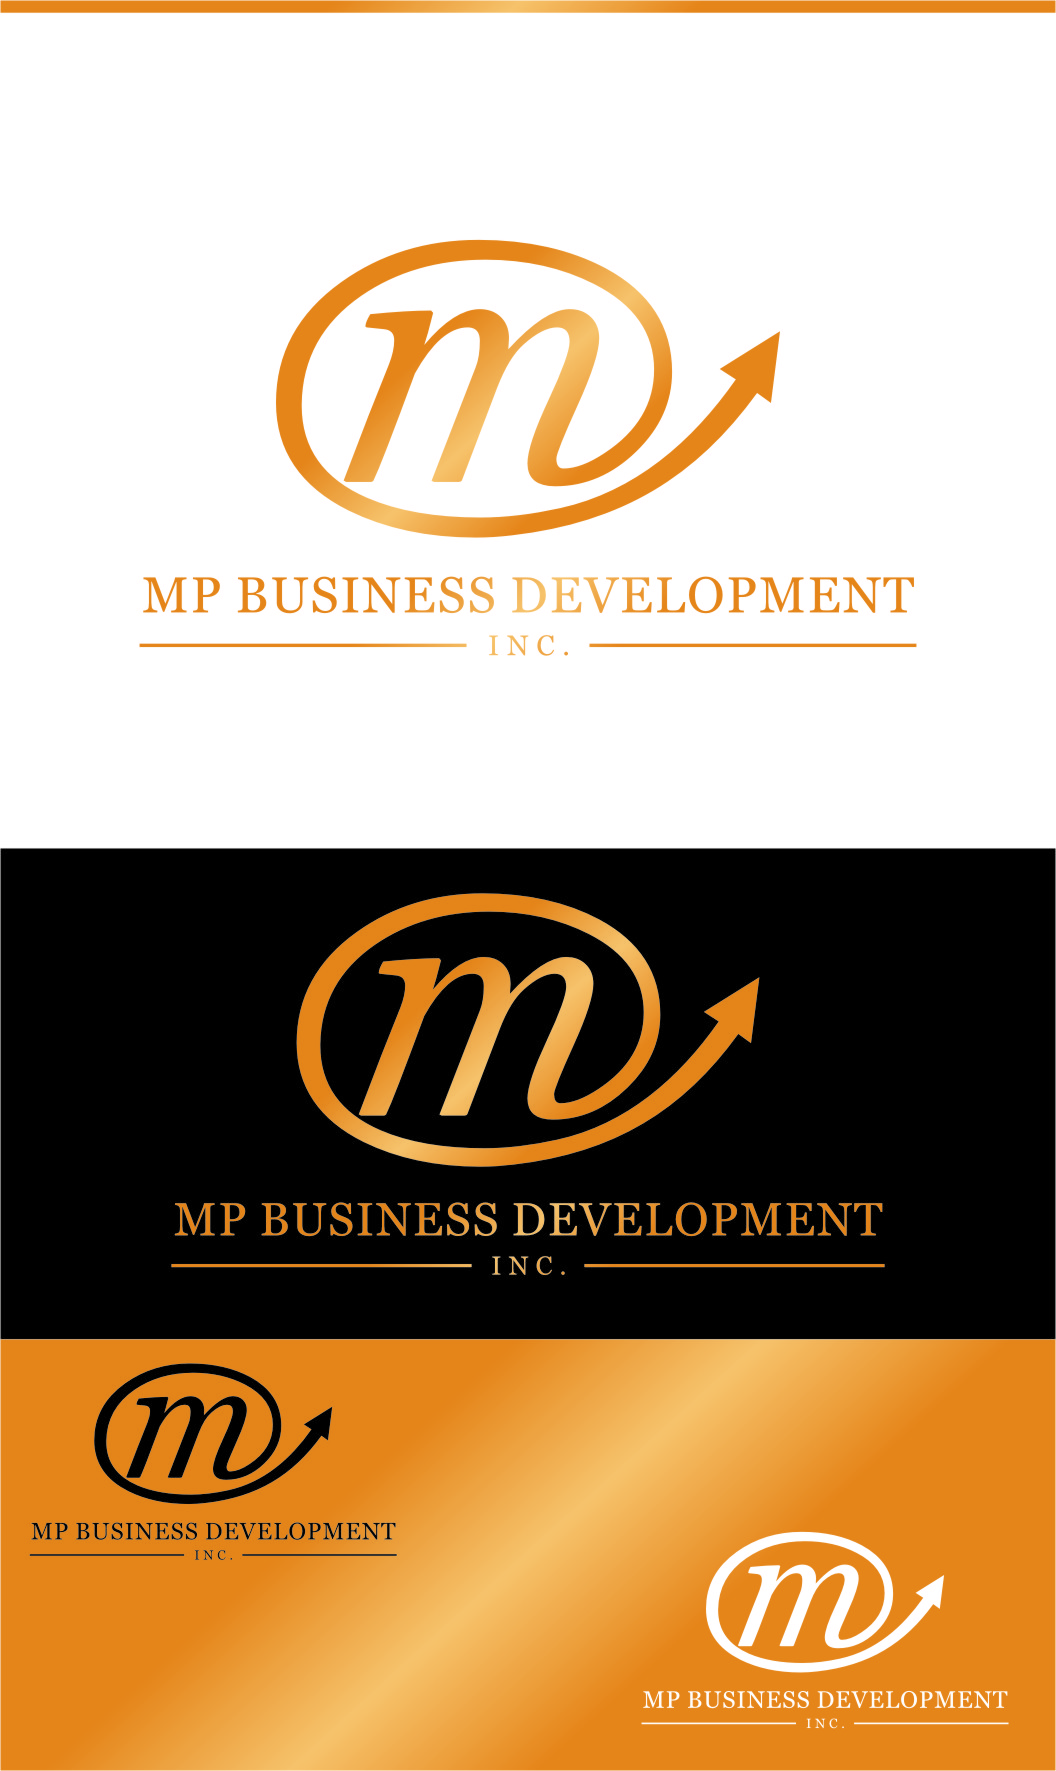 Logo Design by RasYa Muhammad Athaya - Entry No. 238 in the Logo Design Contest MP Business Development Inc. Logo Design.